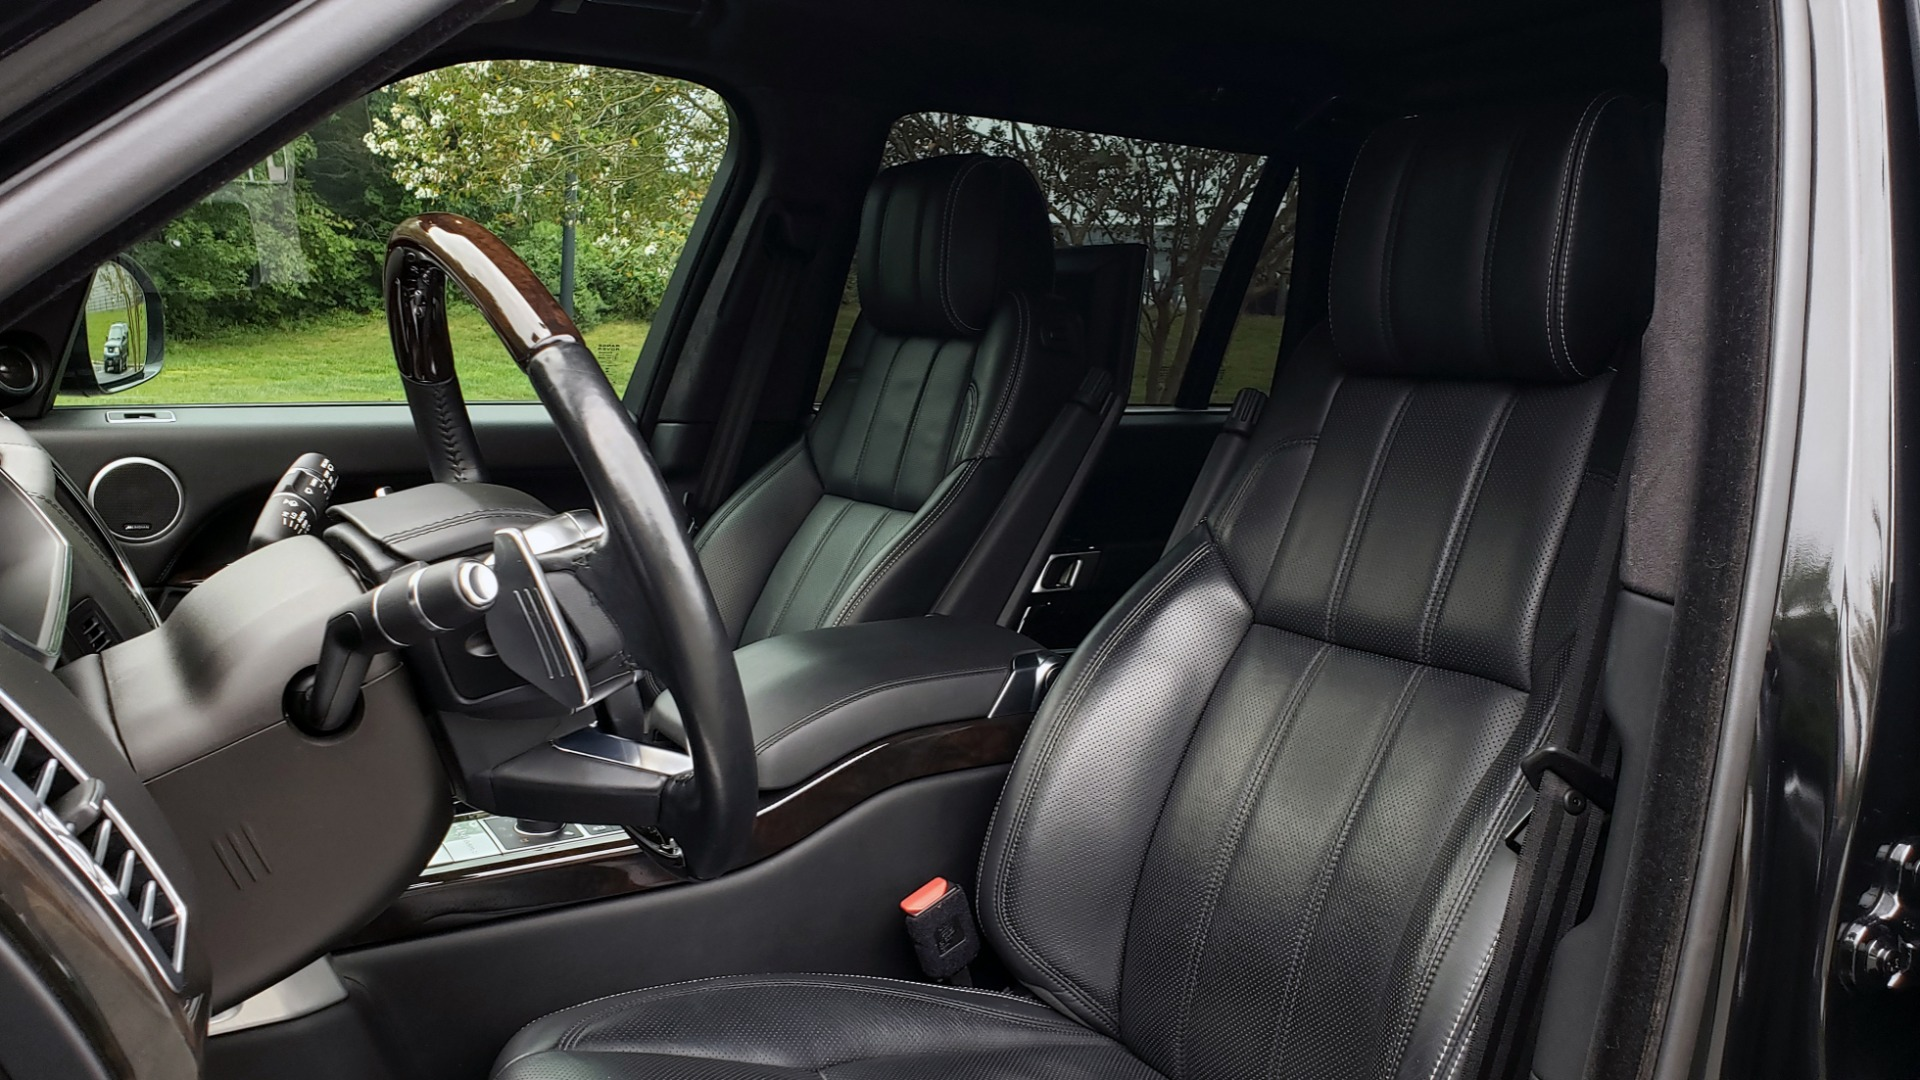 Used 2016 Land Rover RANGE ROVER AUTOBIOGRAPHY / SC-V8 / LWB / PANO-ROOF / NAV / MERIDIAN / ENT / REARVIEW for sale Sold at Formula Imports in Charlotte NC 28227 47